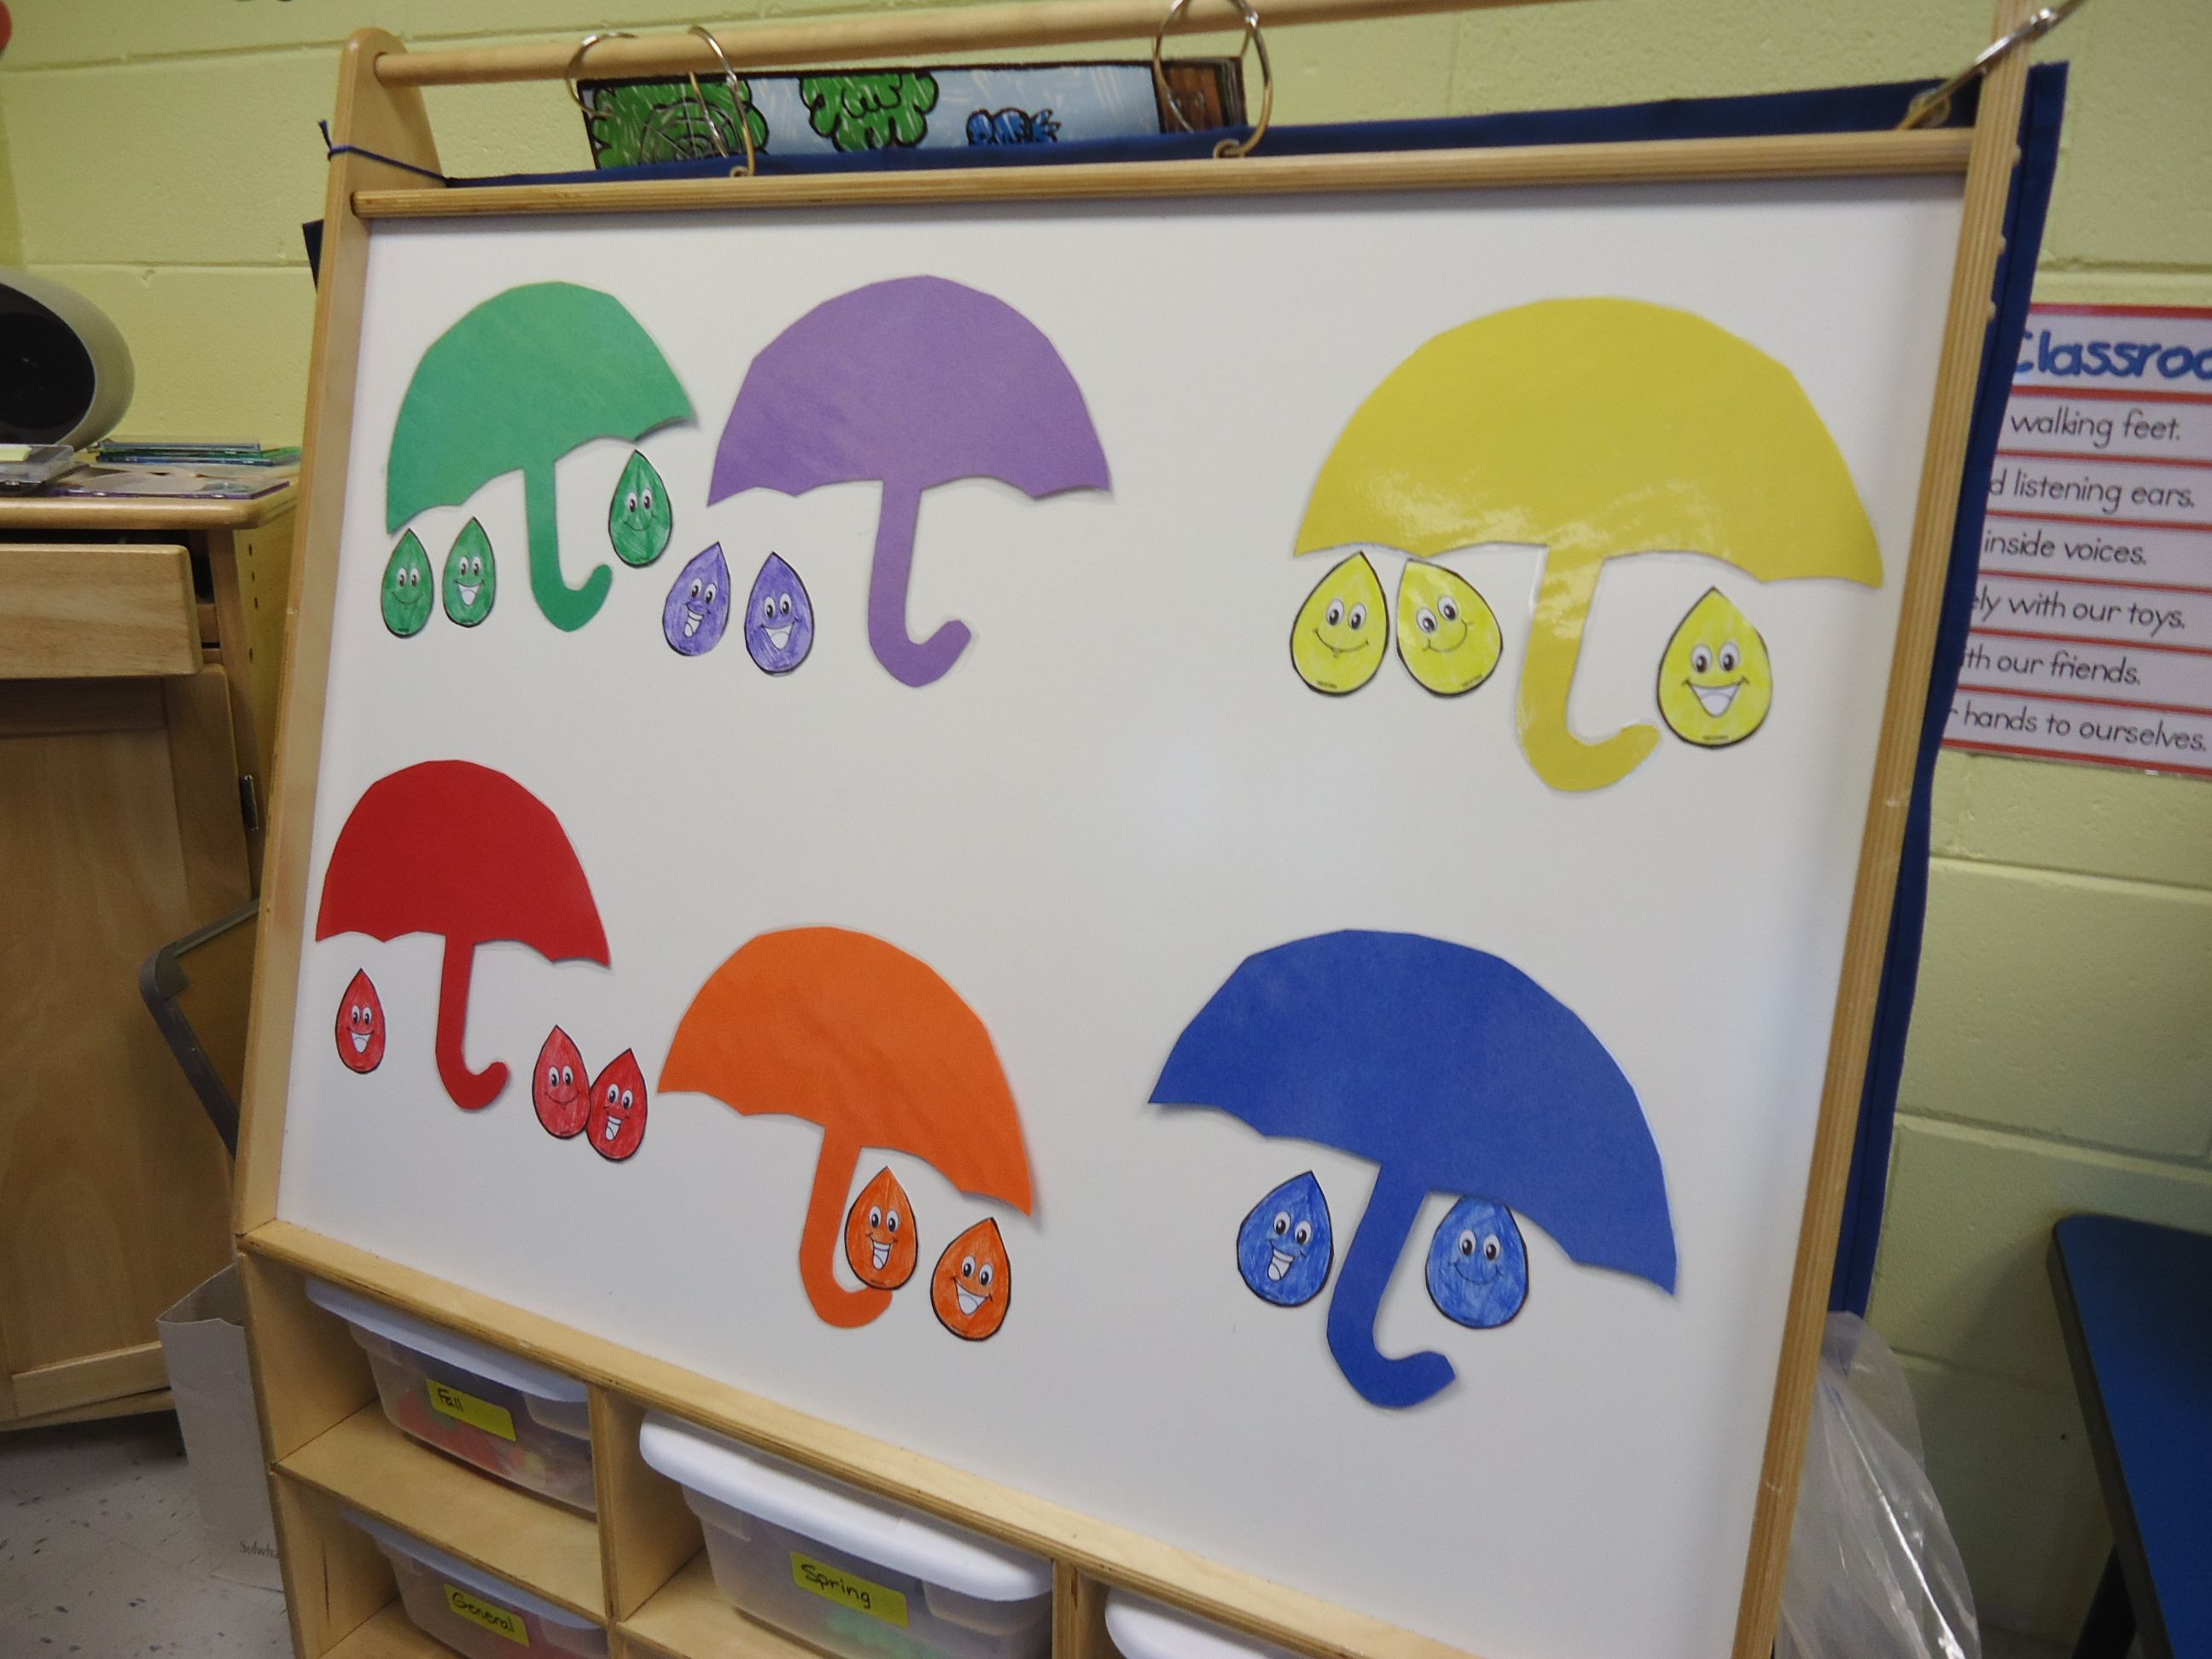 Color Game The Children Match The Correct Color Rainbow To The Same Color Umbrella We Do This